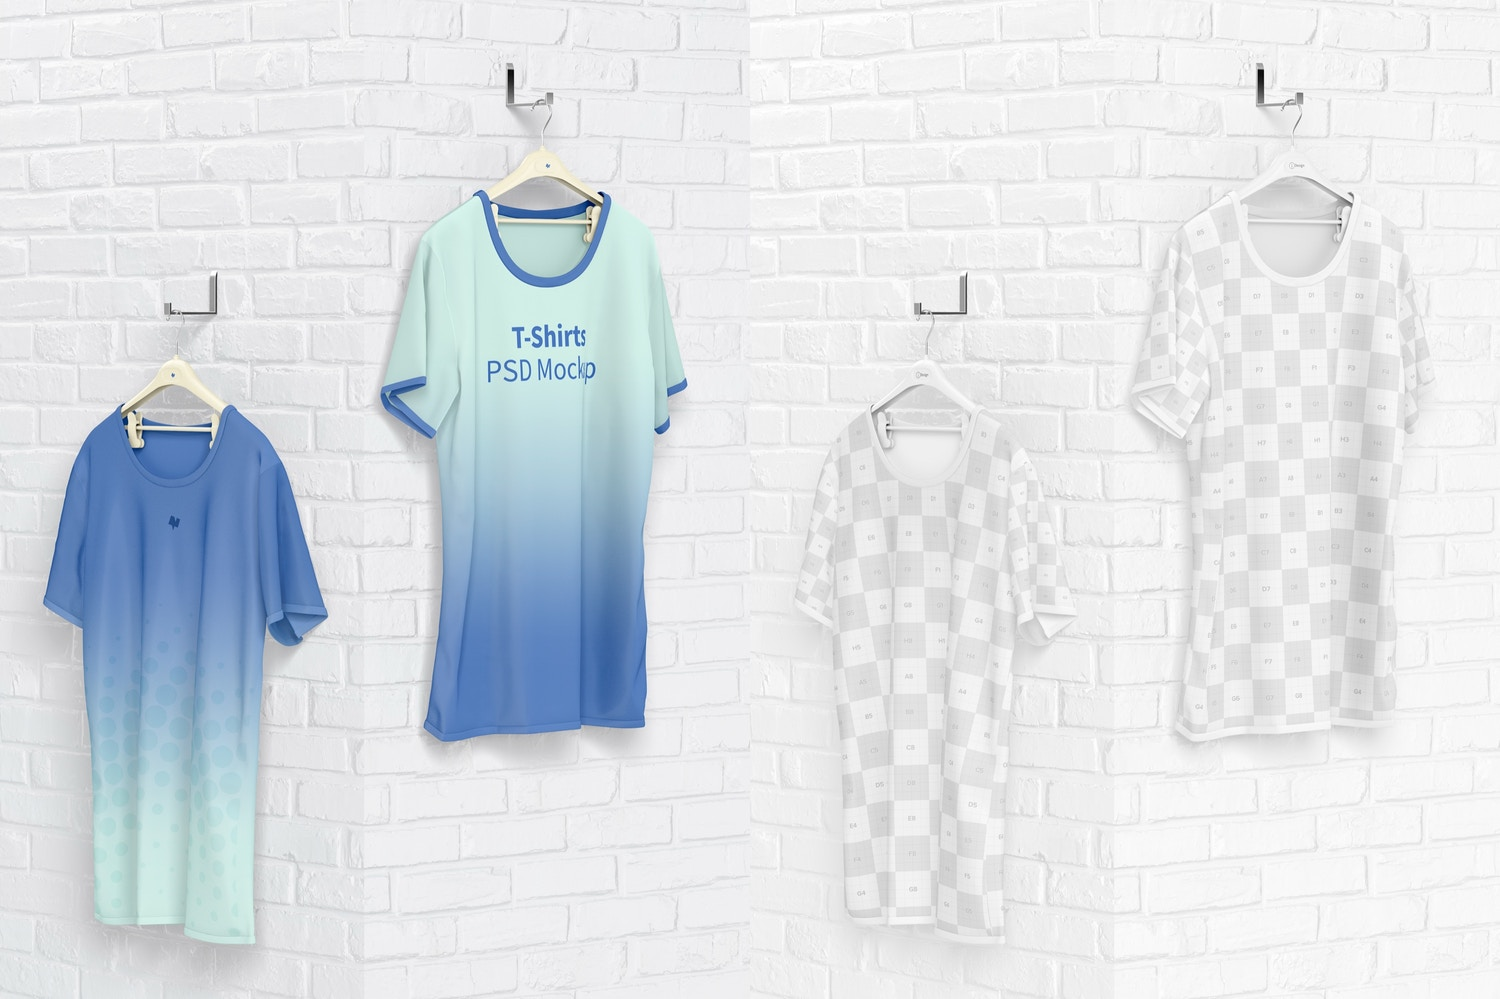 Hanging T-Shirts Mockup, Perspective View